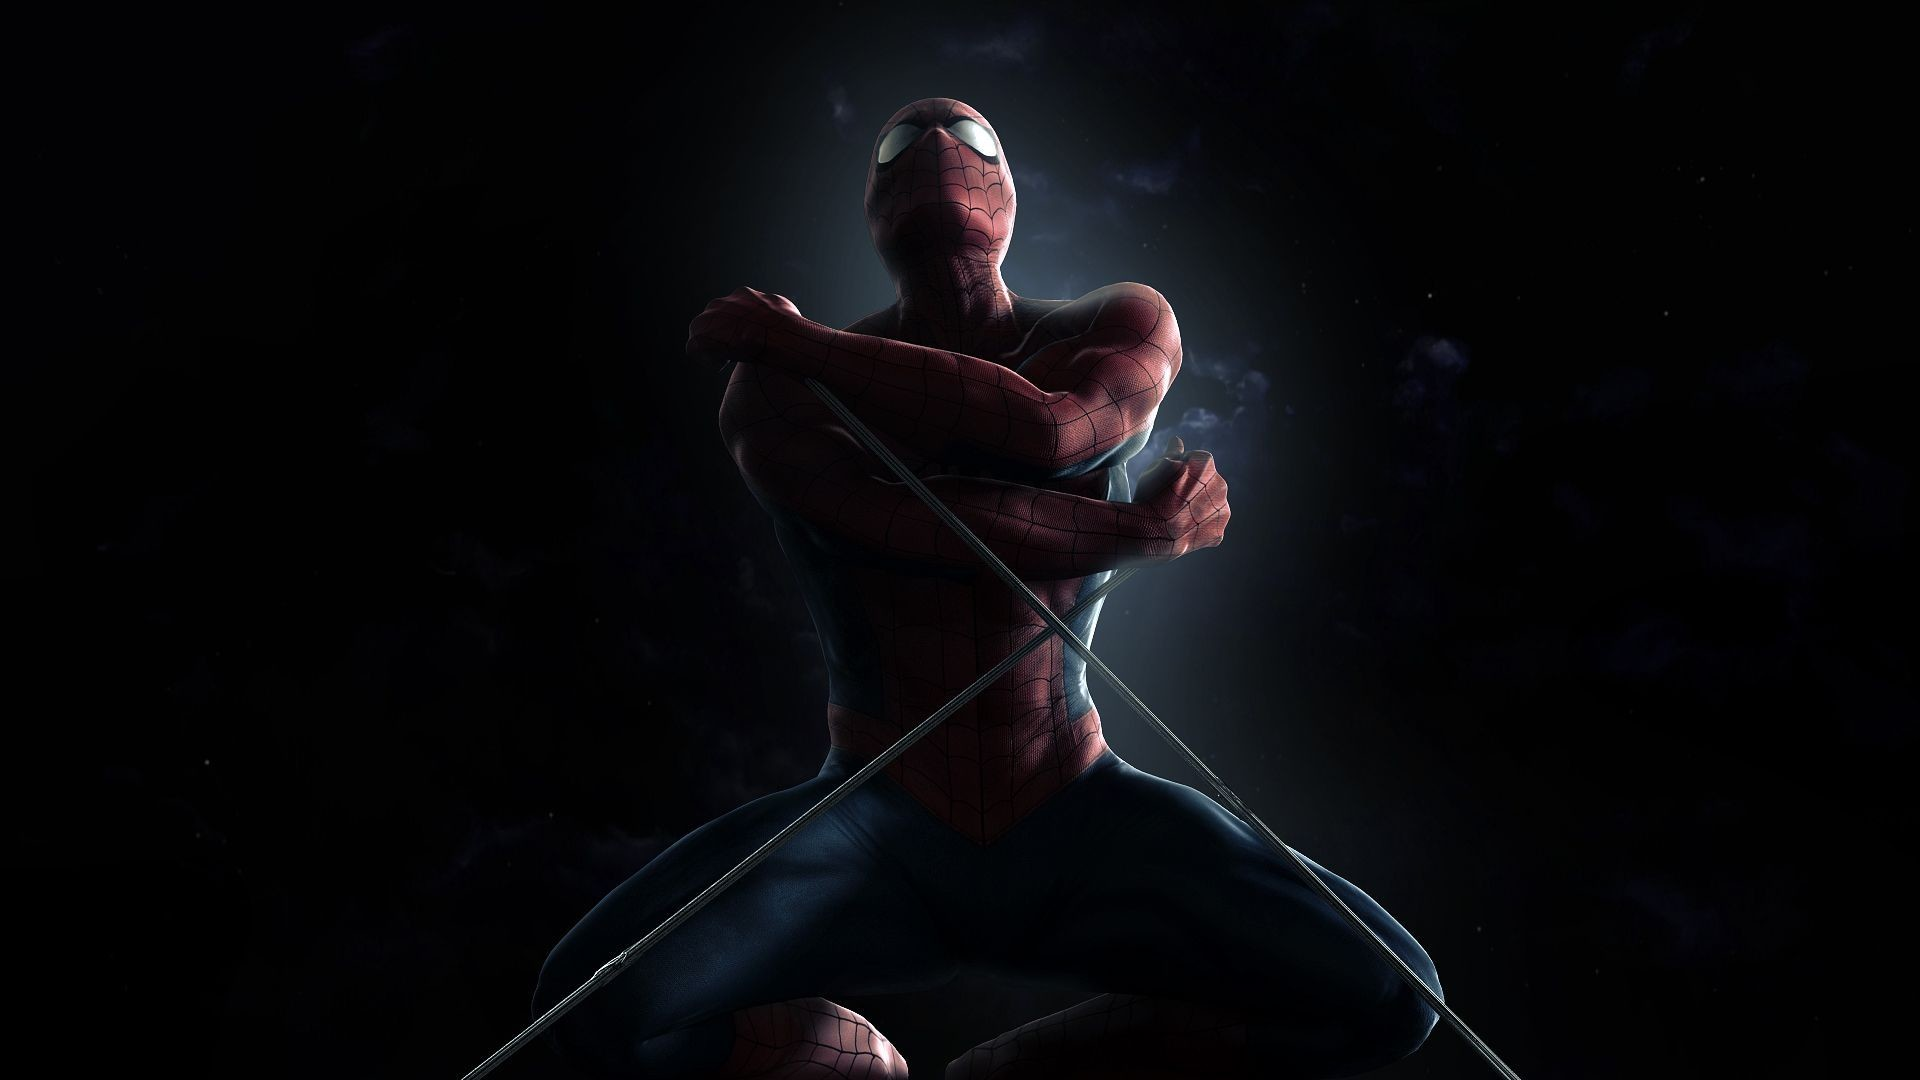 Spiderman Latest Wallpapers HD Wallpapers 1920×1080 Spiderman Wallpaper Hd  (47 Wallpapers) |